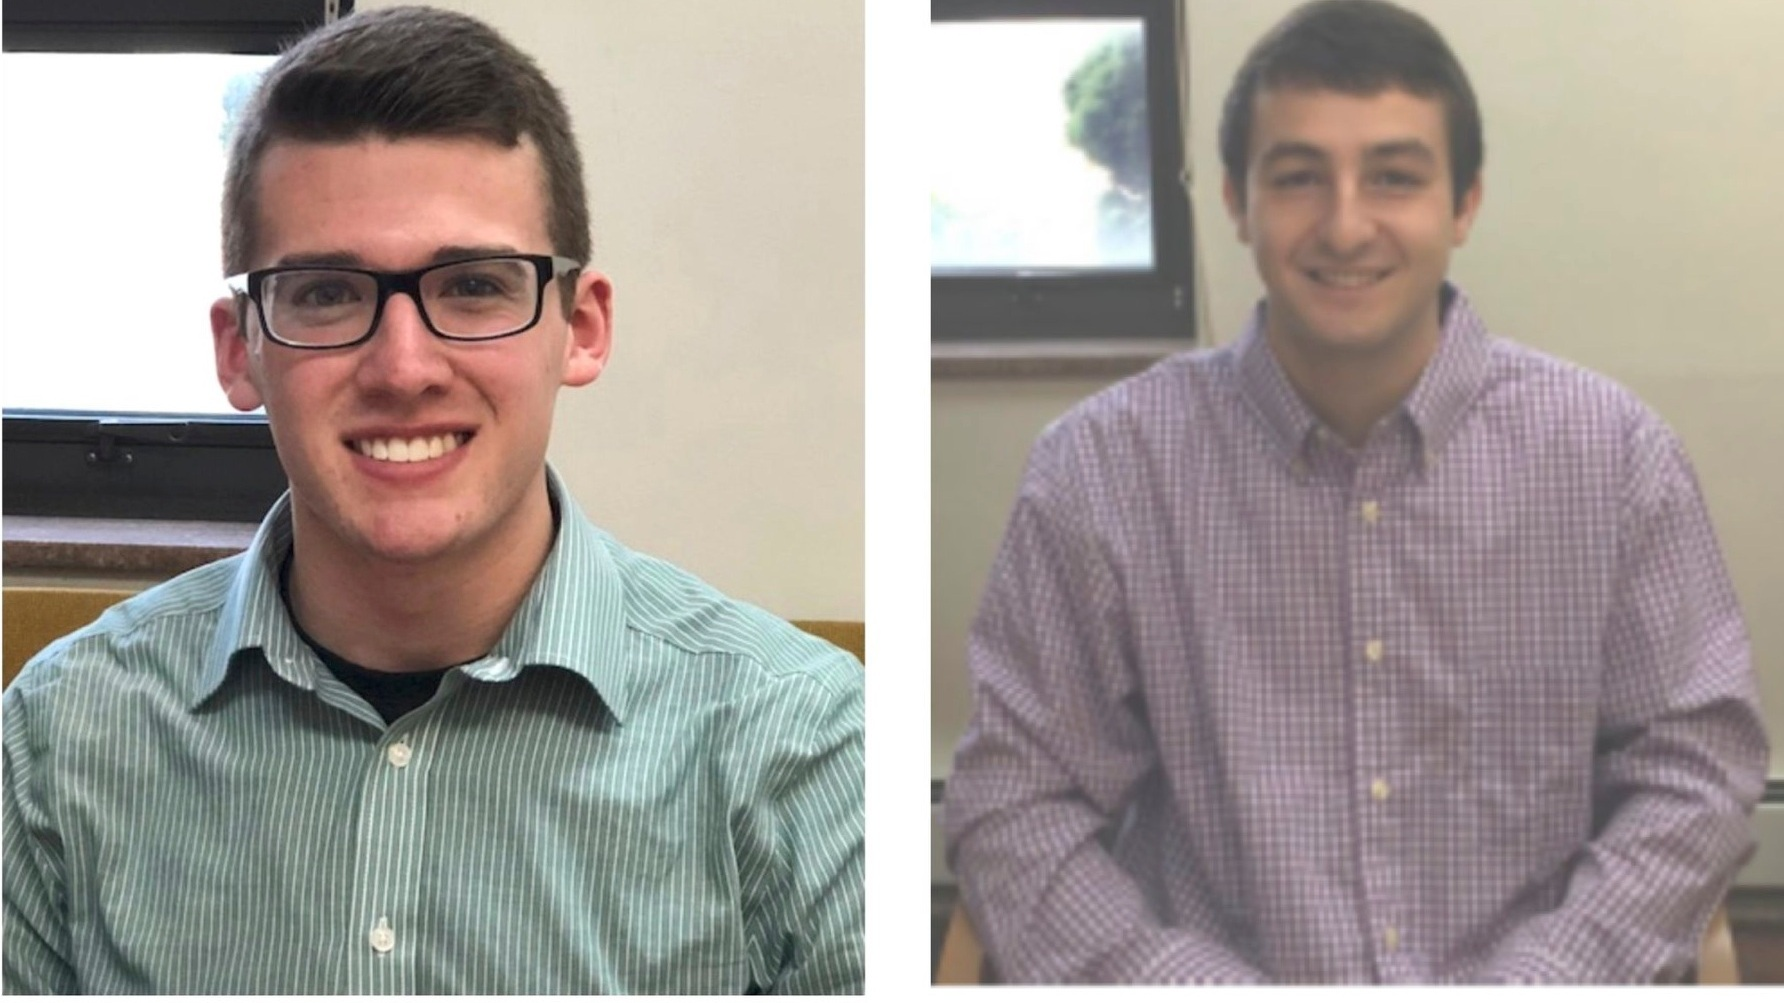 - We are happy to welcome back Chemical Engineering interns, Jake Flaherty and Aaron Guche.Jake and Aaron are both students at the University of Pittsburgh's Swanson School of Engineering and interned at Neville last year.Glad to have you both back!